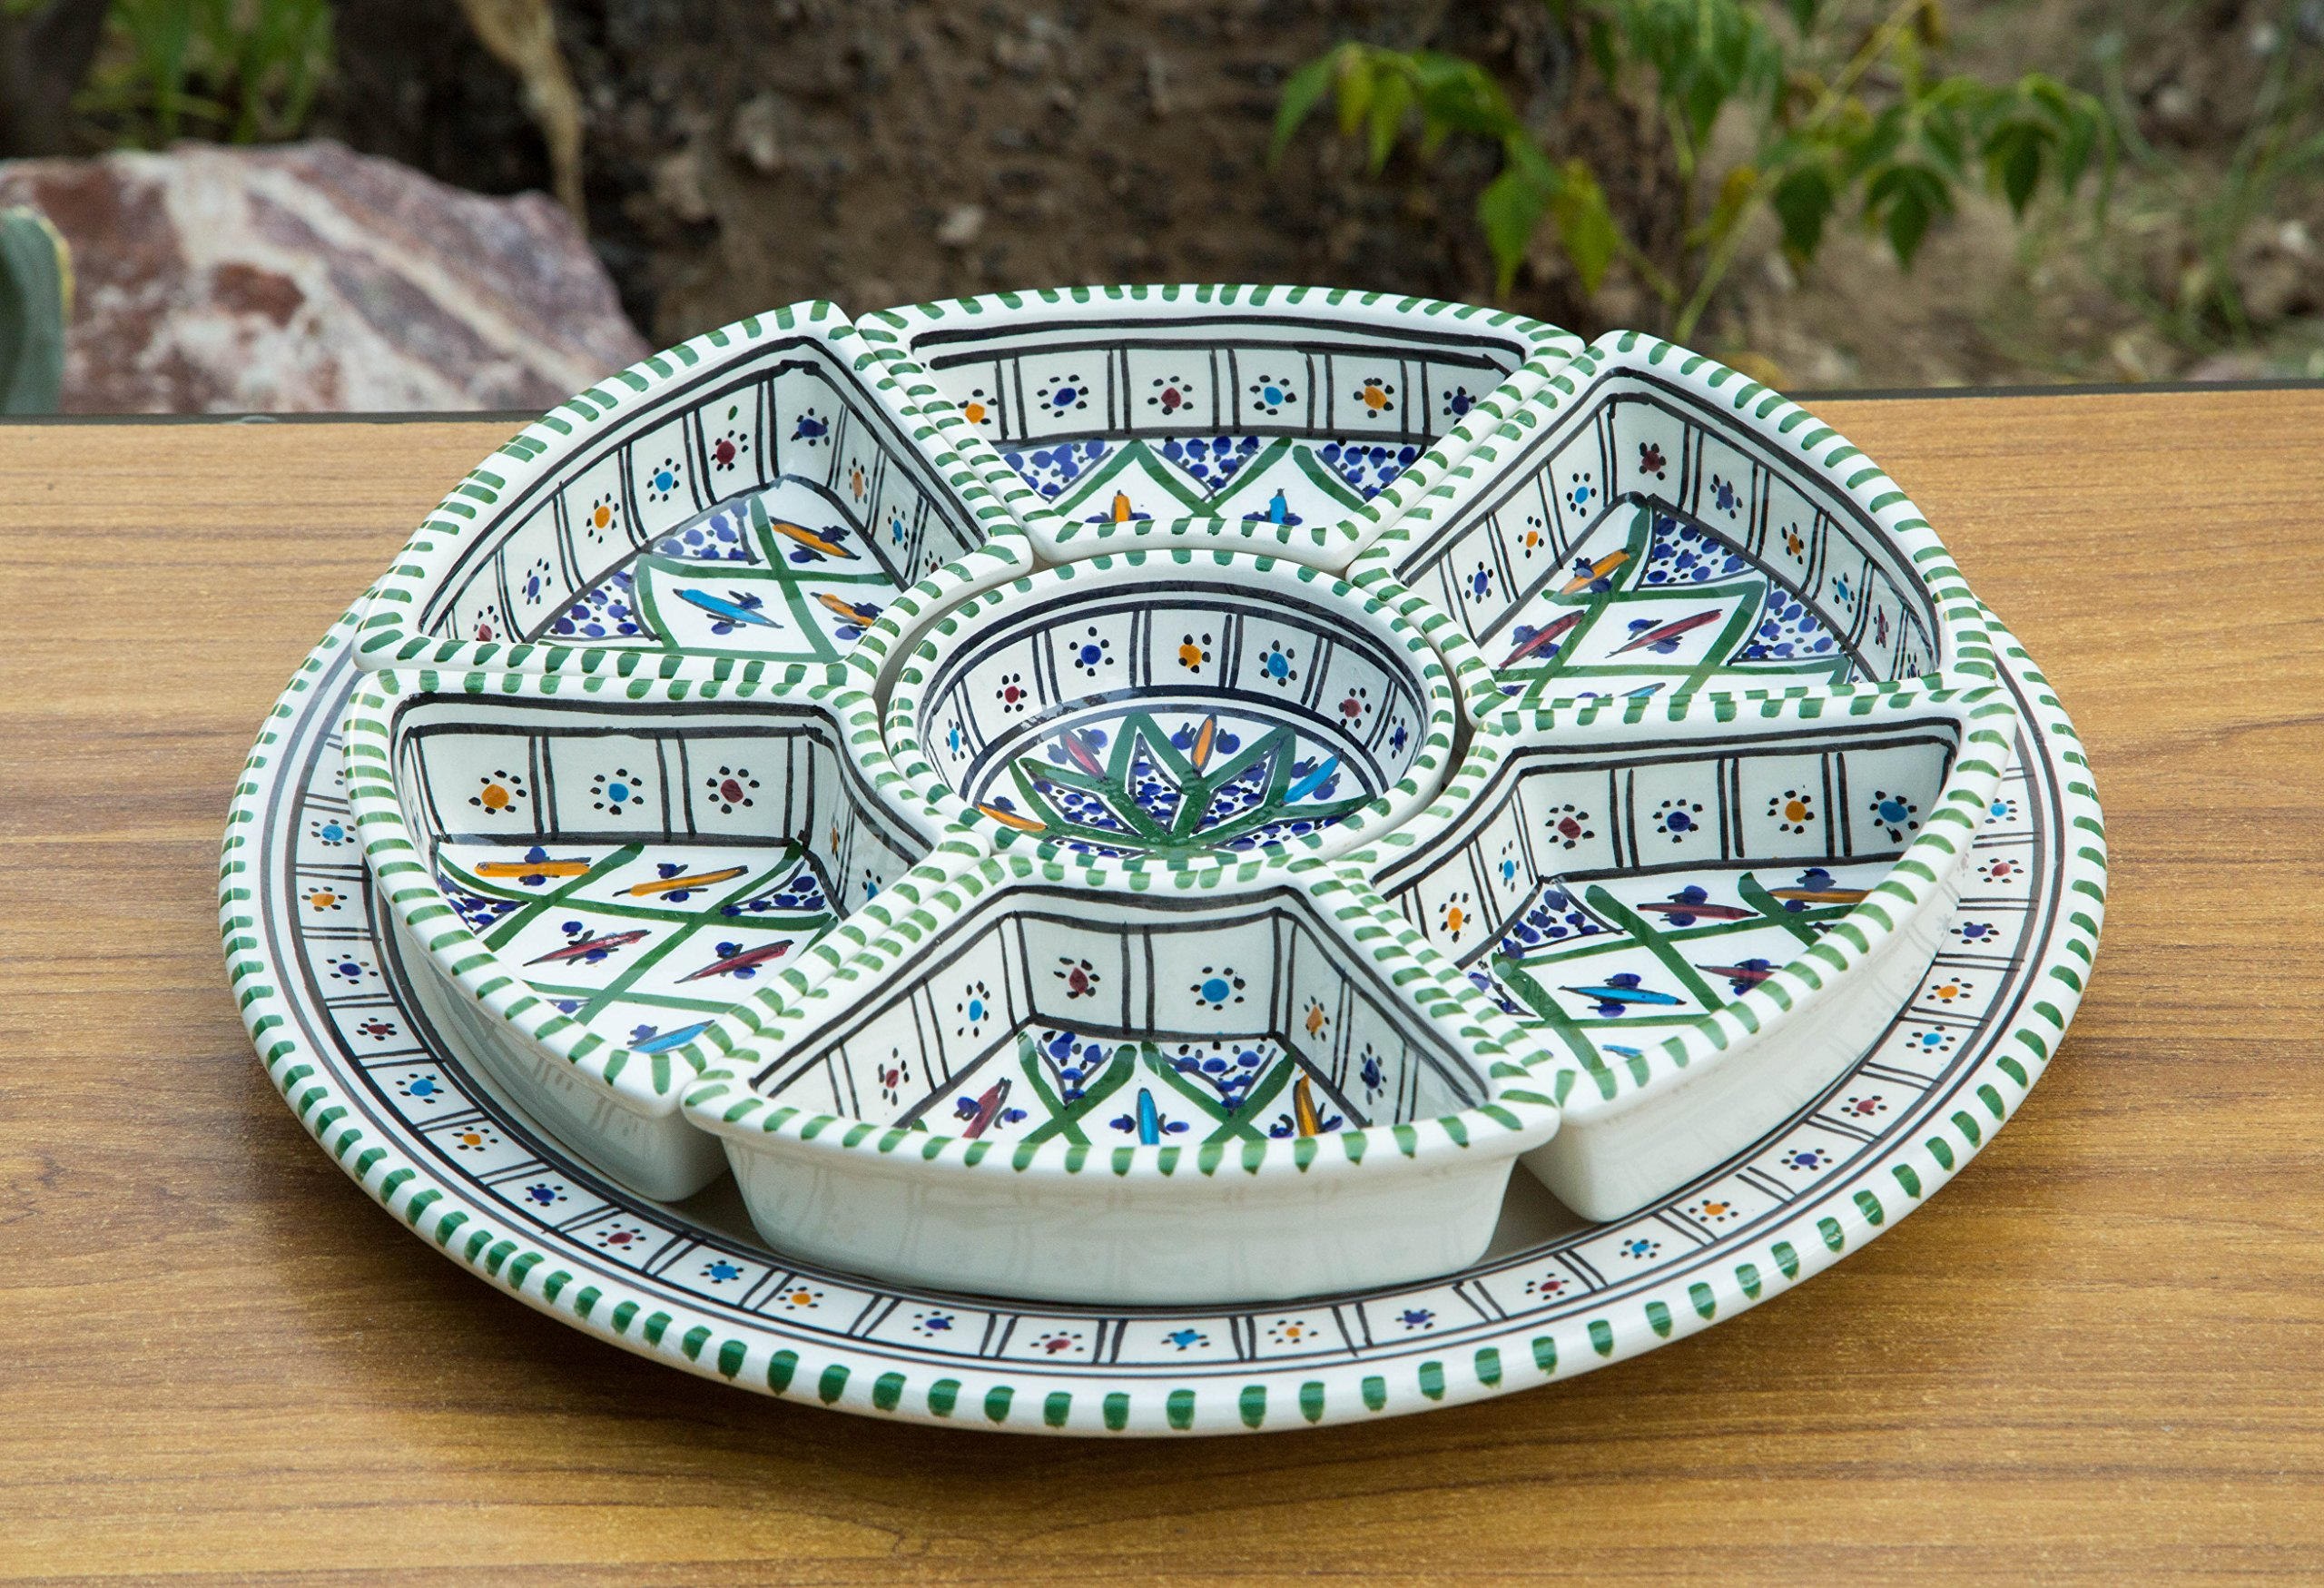 KAMSAH Large Green Round Dippers, 8 Pieces of Ceramic Dipping and Serving Plates Handmade, Hand-Painted - Gifts, Wedding Gifts Birthday Celebration, Housewarming Gifts, Labor Day Celebration